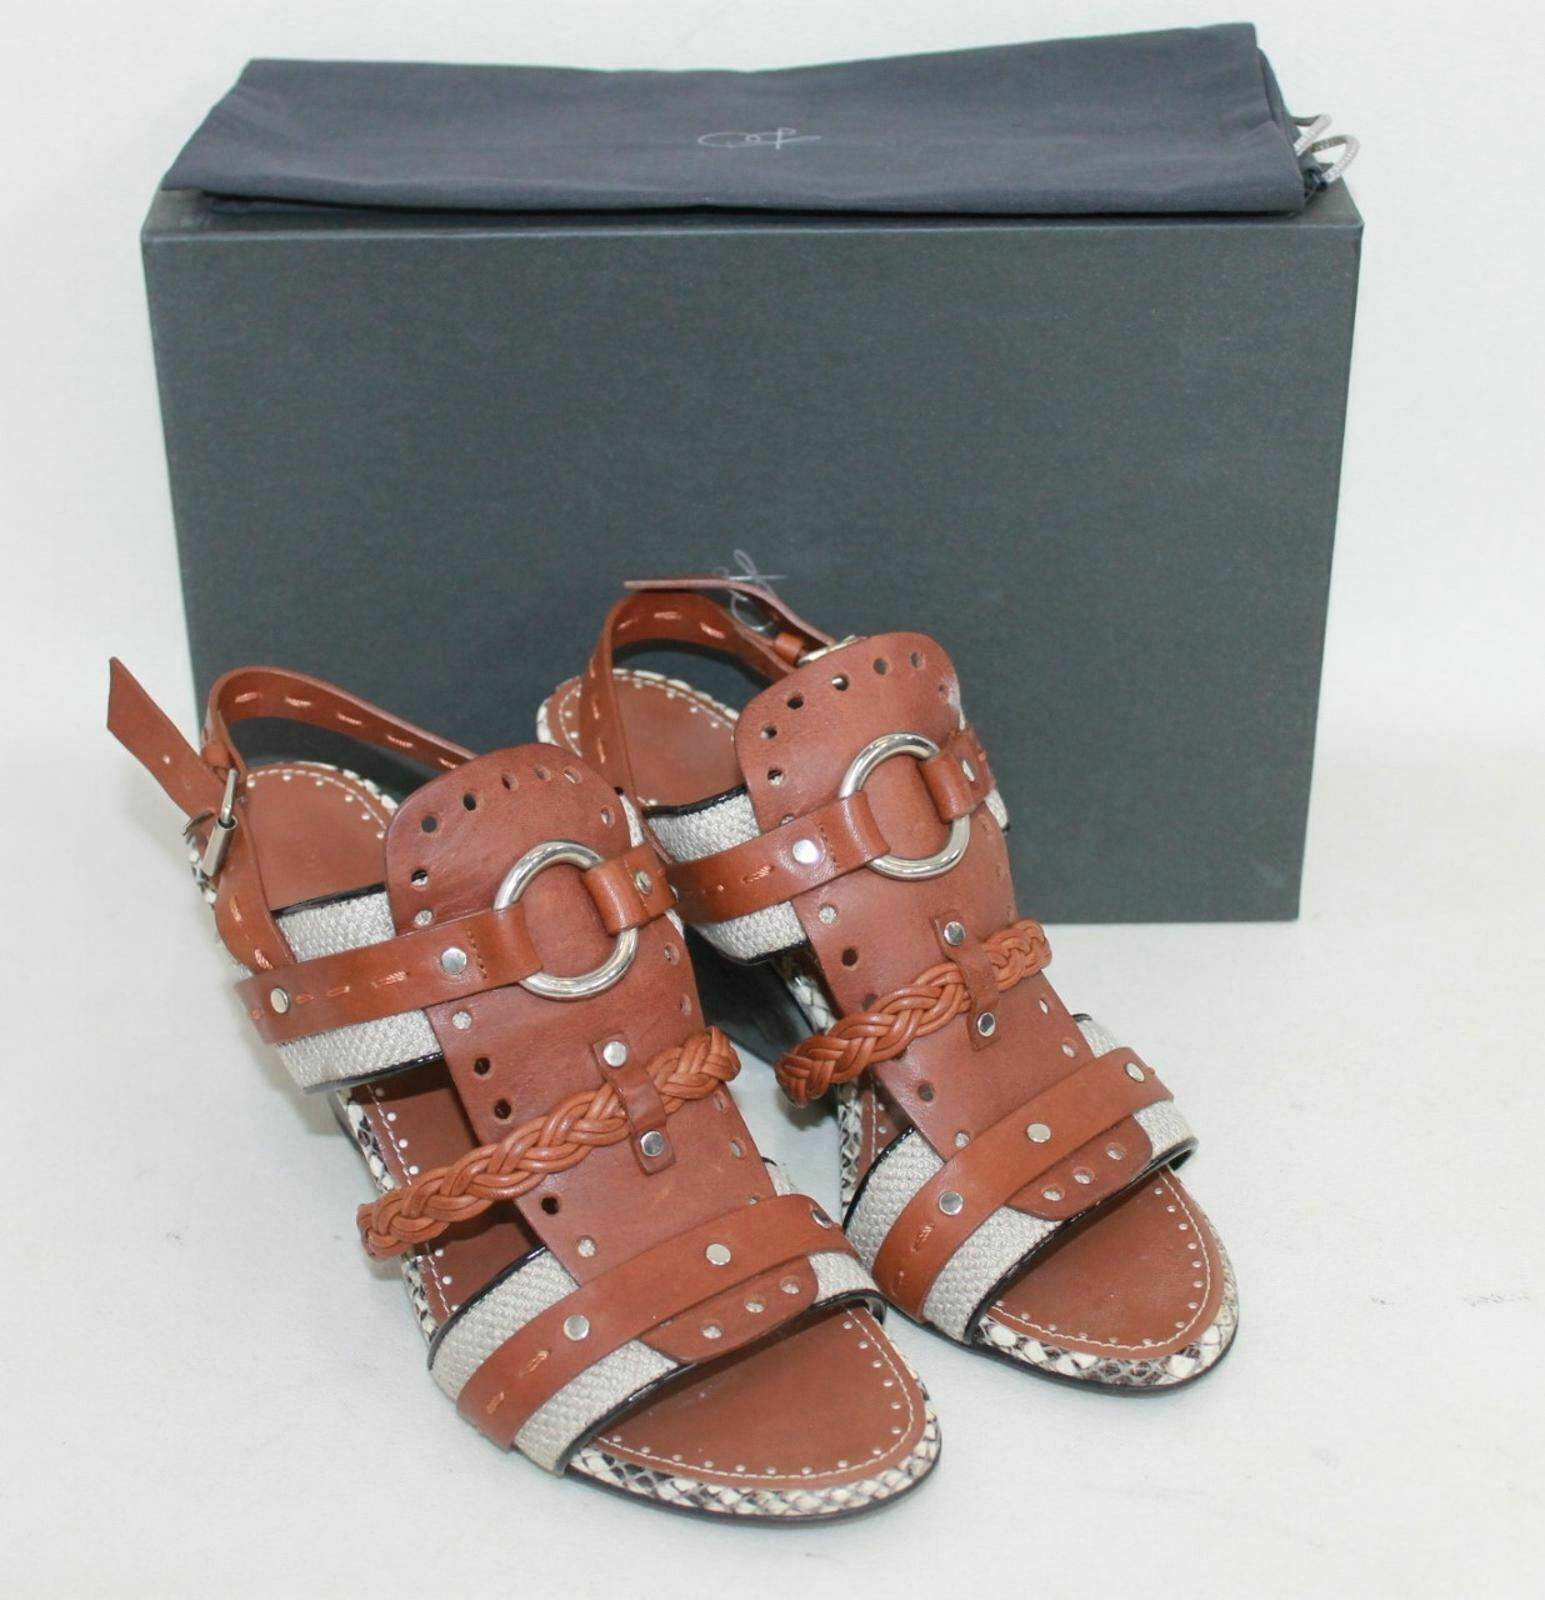 NEW PROENZA SCHOULER Ladies Brown Leather Heeled Strappy Sandals UK3 EU37